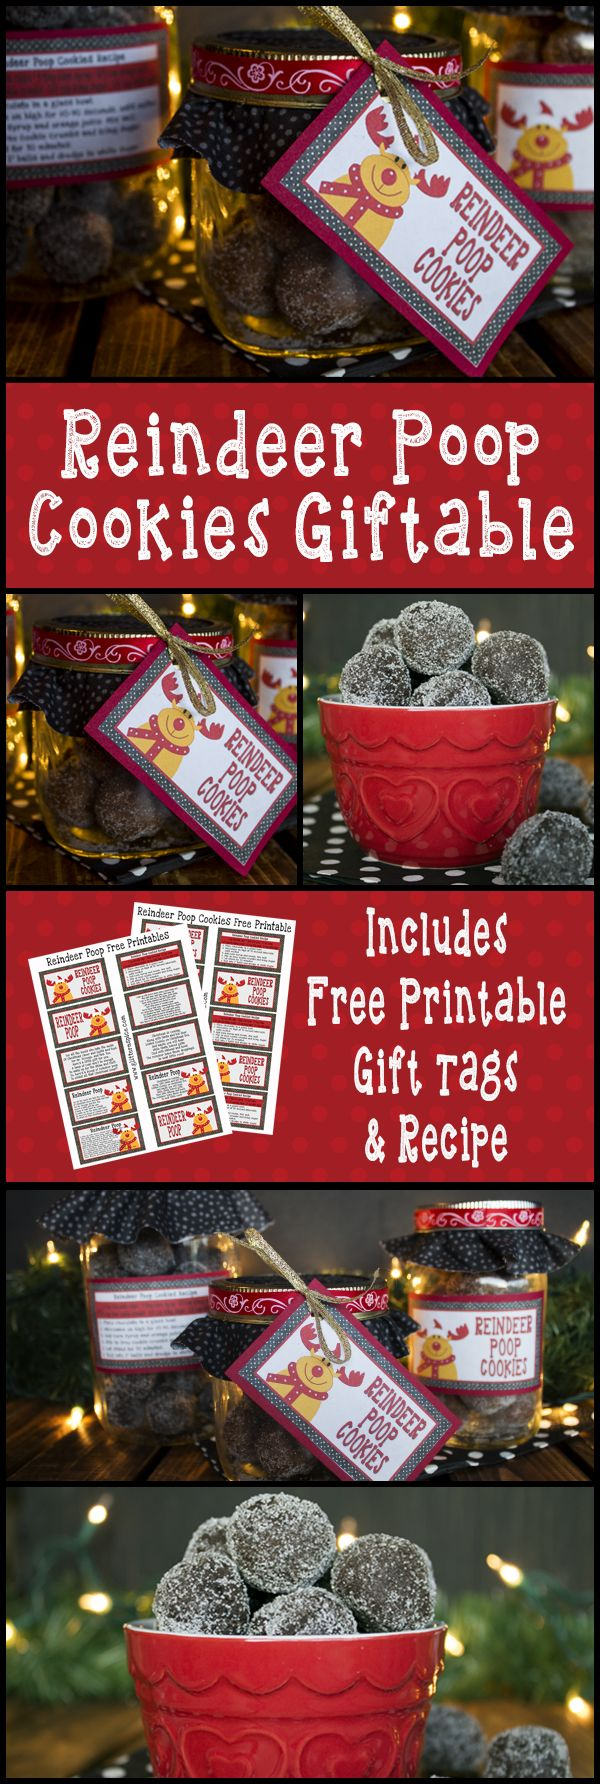 ...because who doesn't want to eat reindeer crap during the holidays!